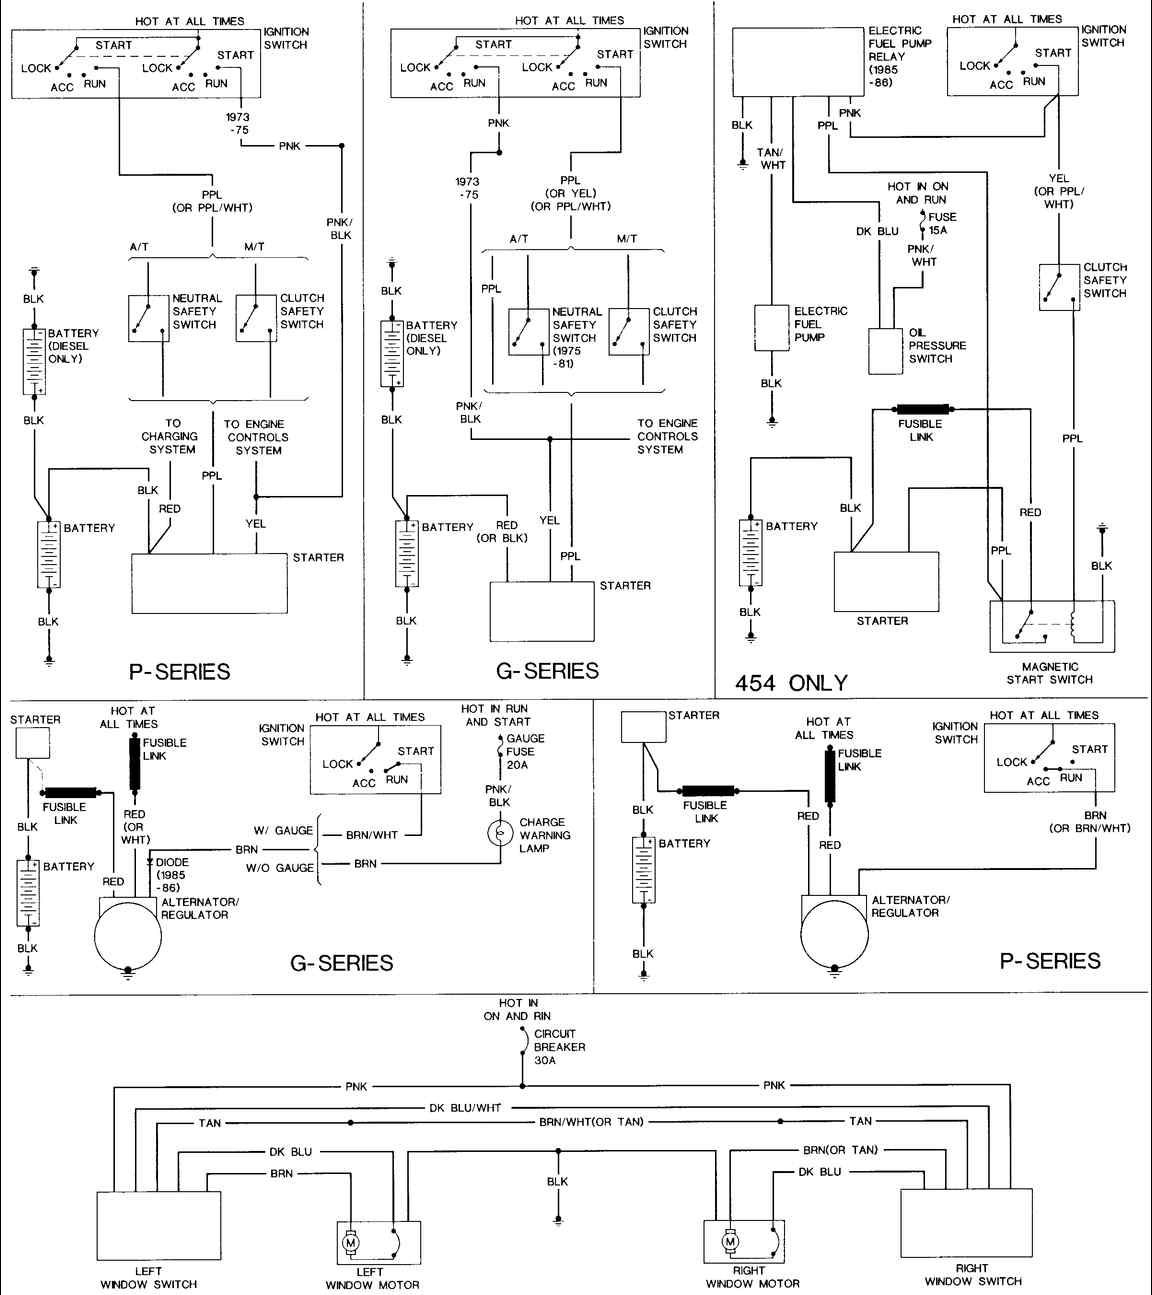 1986 chevrolet p30 wiring diagram wiring diagrams imgchevy van wiring  diagram wiring library 1986 chevy p30